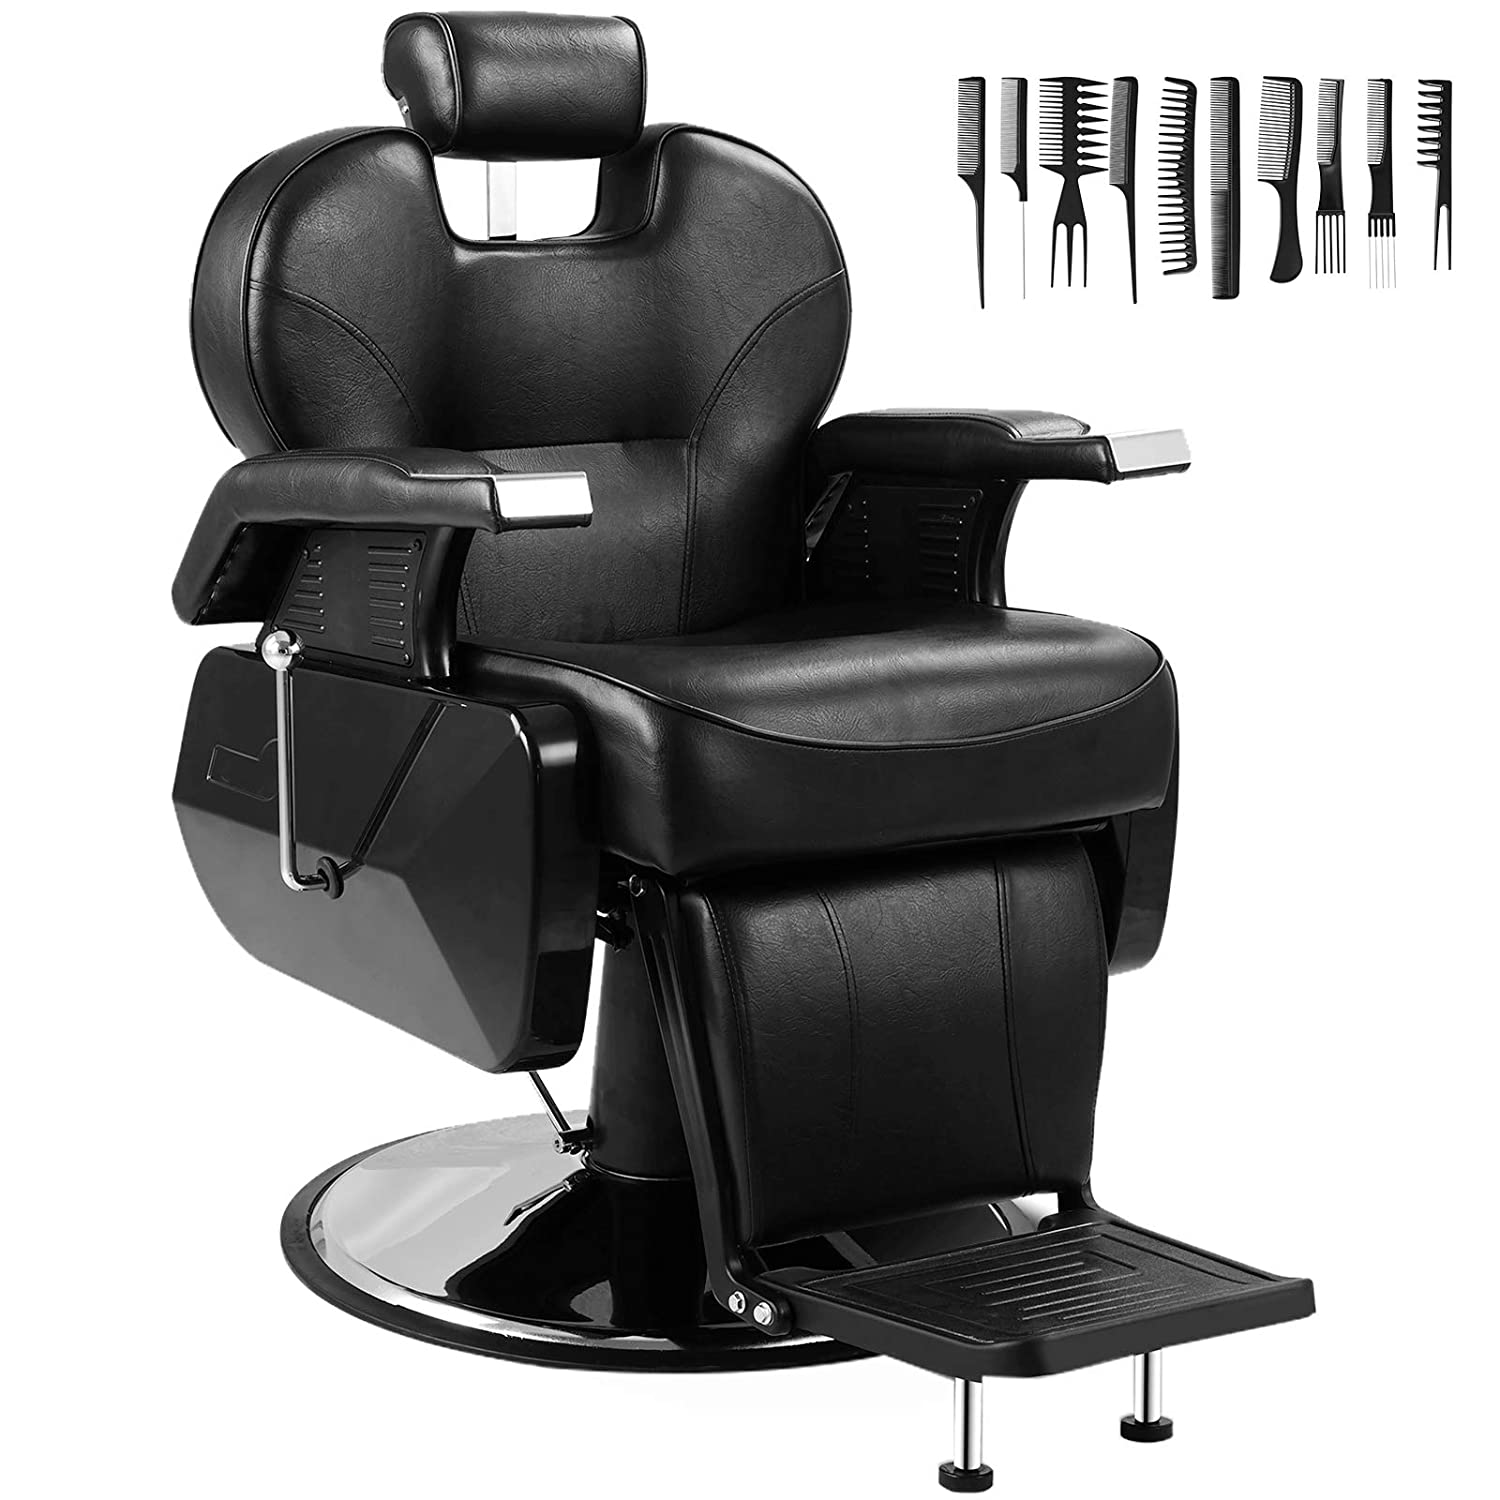 Superworth All Purpose Heavy Duty Salon Barber Chair review